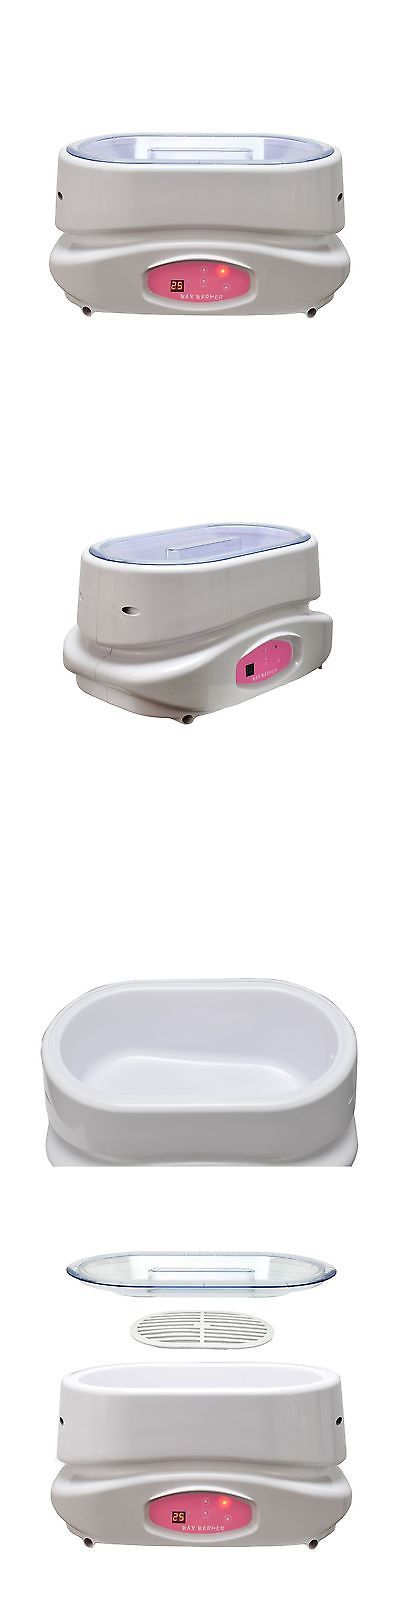 Professional Waxing Warmers: Digital Paraffin Wax Hot Pro Warmer Therapy Parafin Heater Bath Spa Equipment -> BUY IT NOW ONLY: $43.88 on eBay!